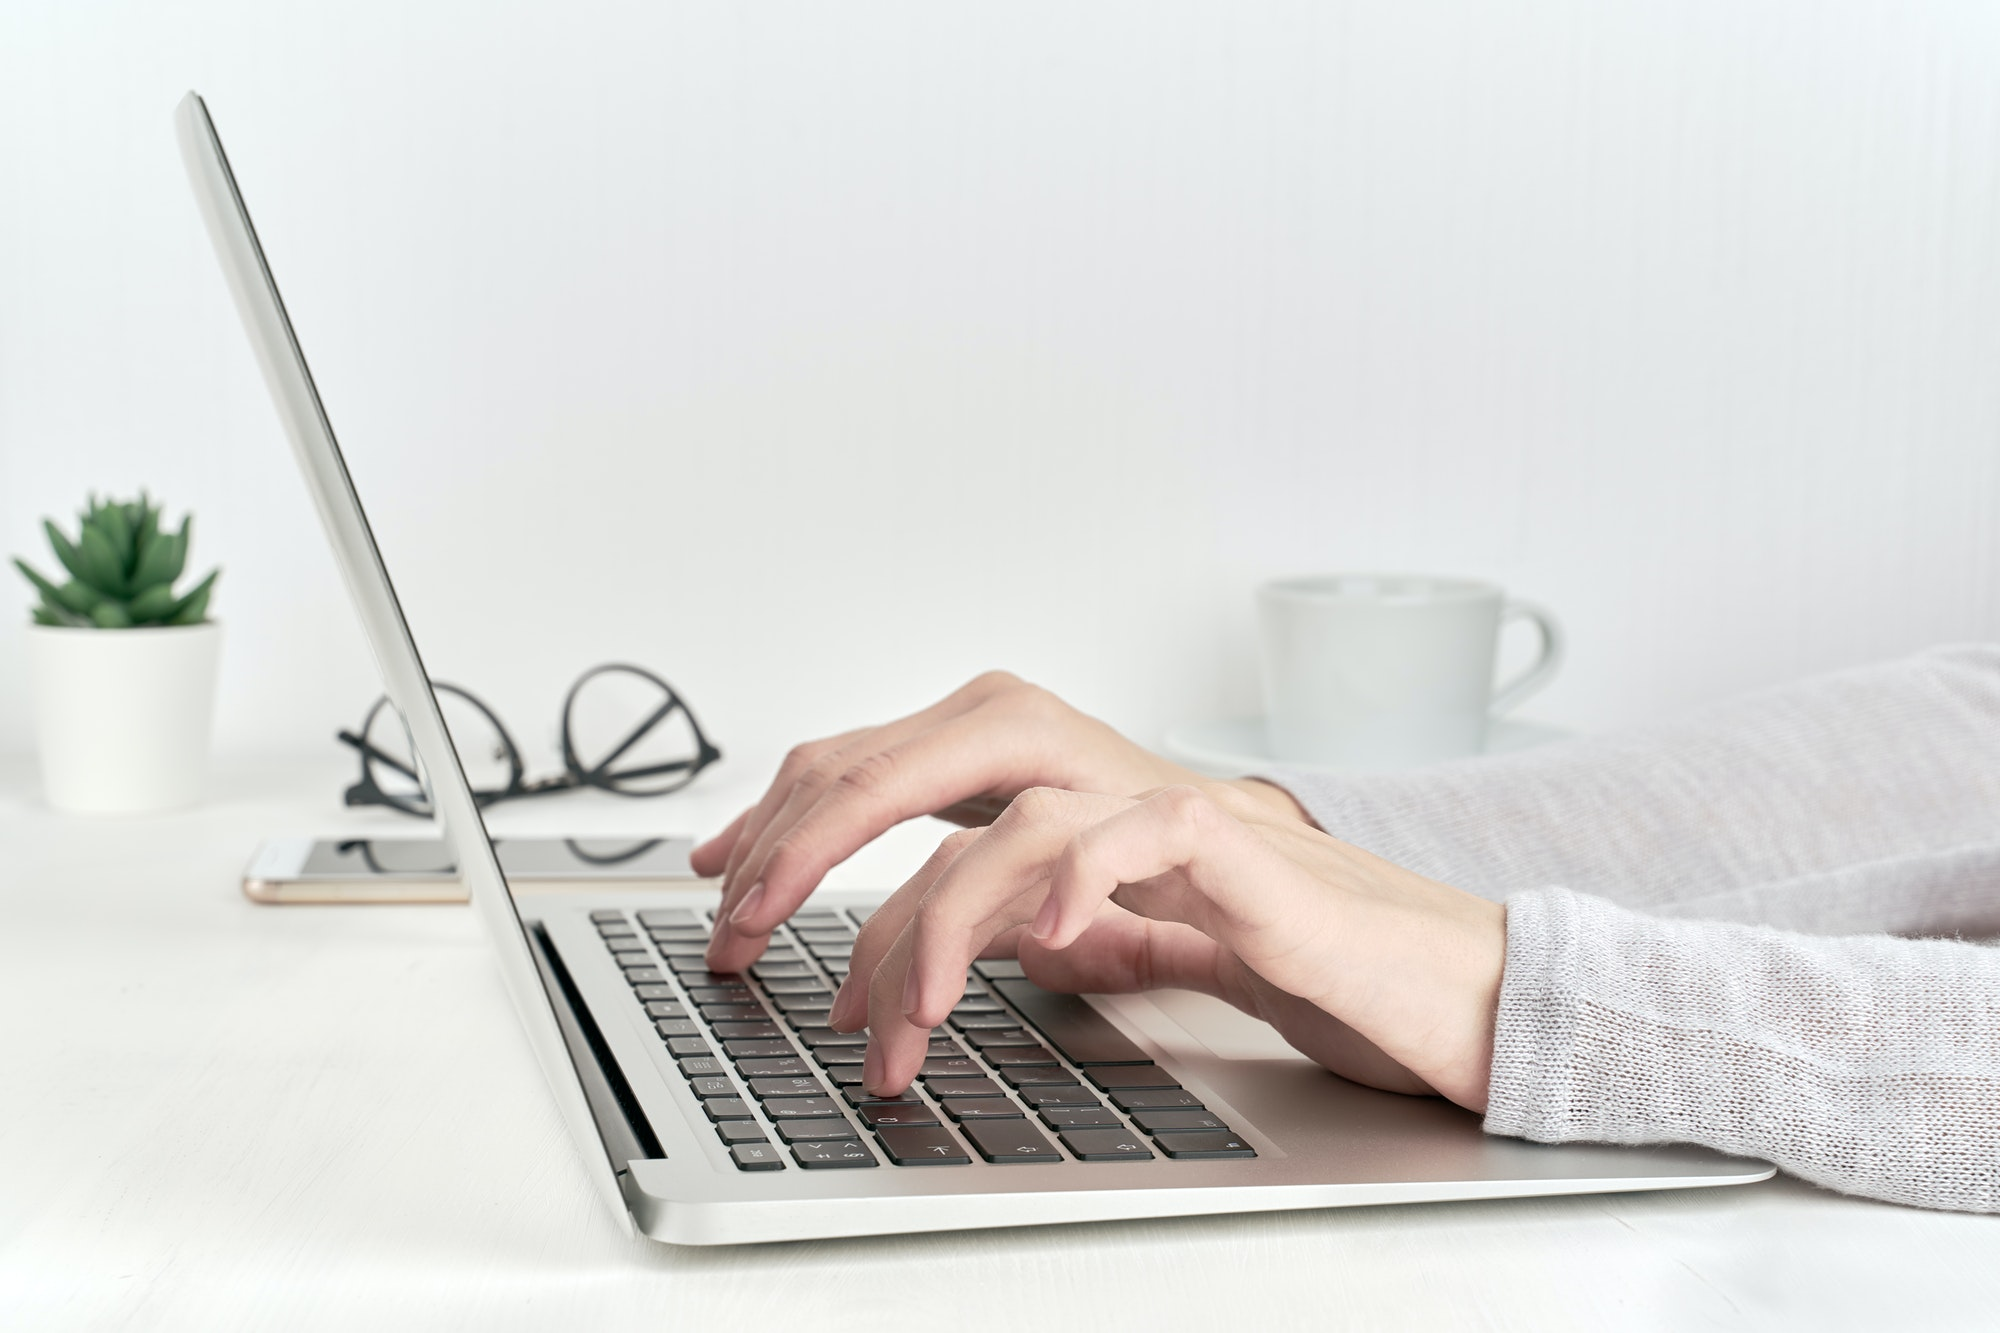 person typing on laptop keyboard, modern concept of office work or studying